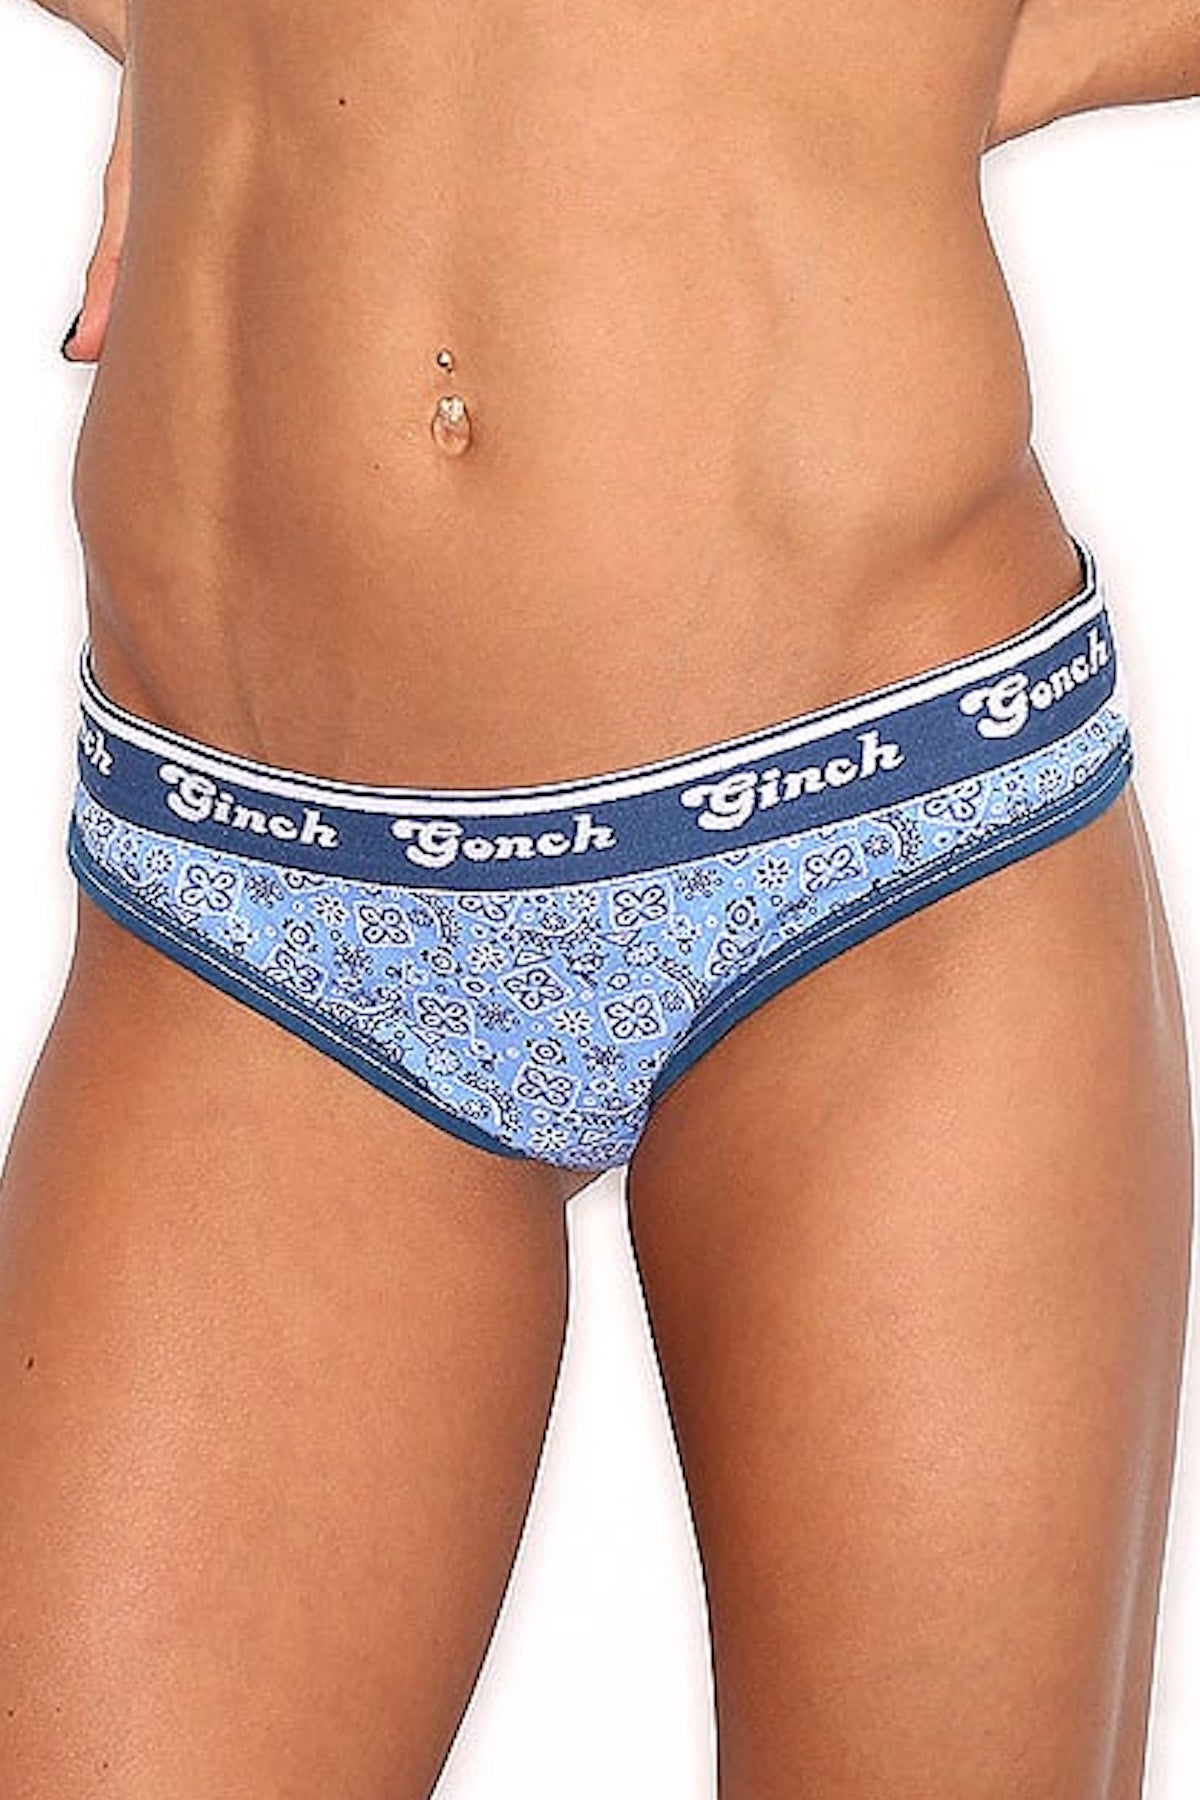 Ginch Gonch Blue Bandana Thong